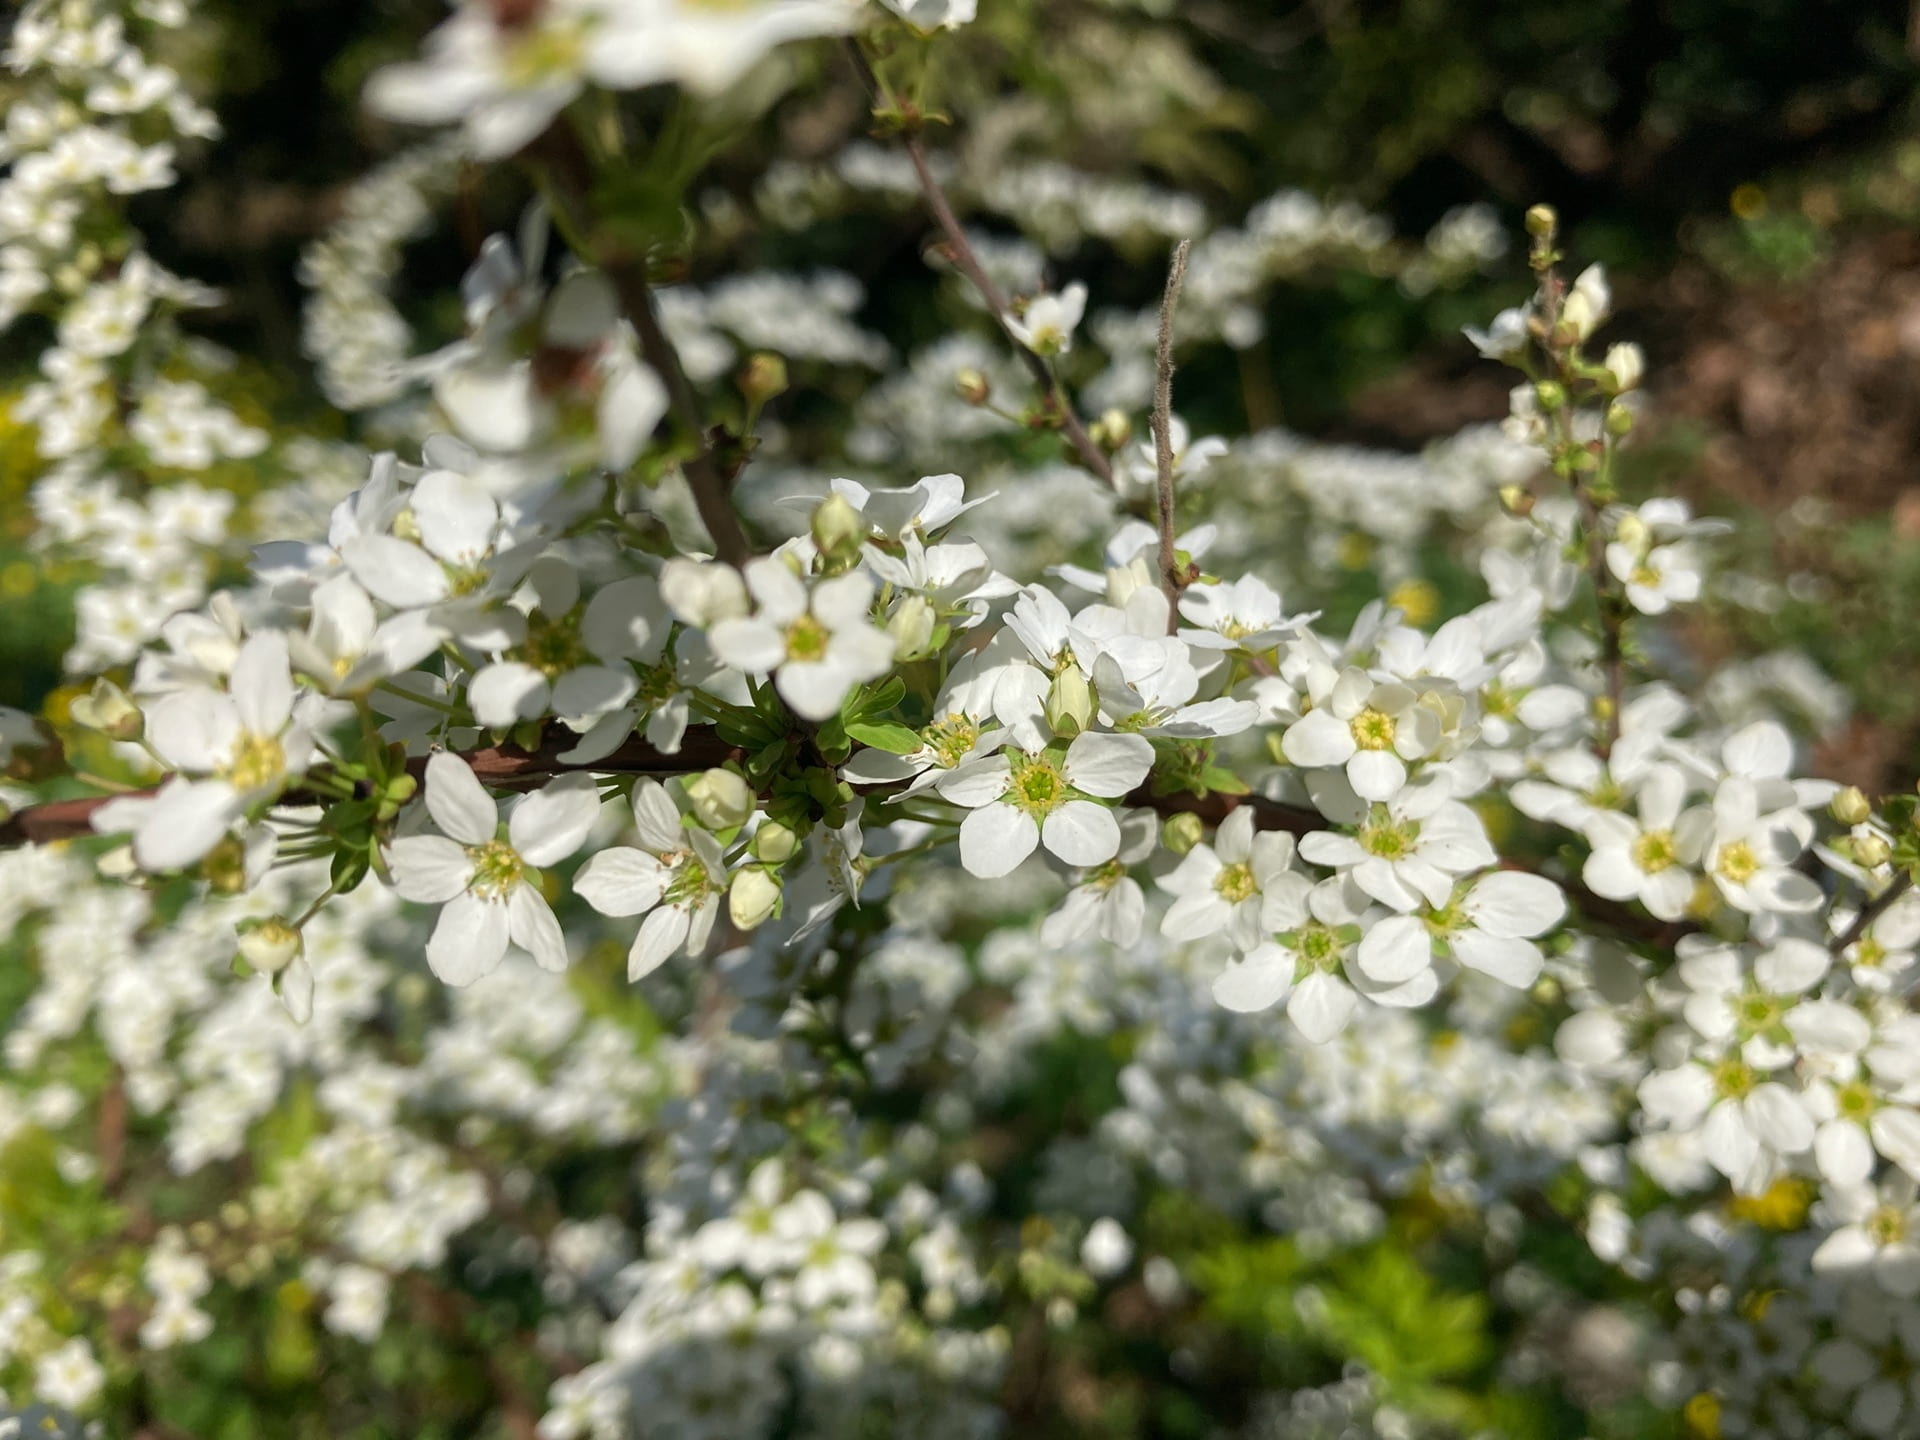 Spirea has many small flowers that combine to create a frothy floral effect.